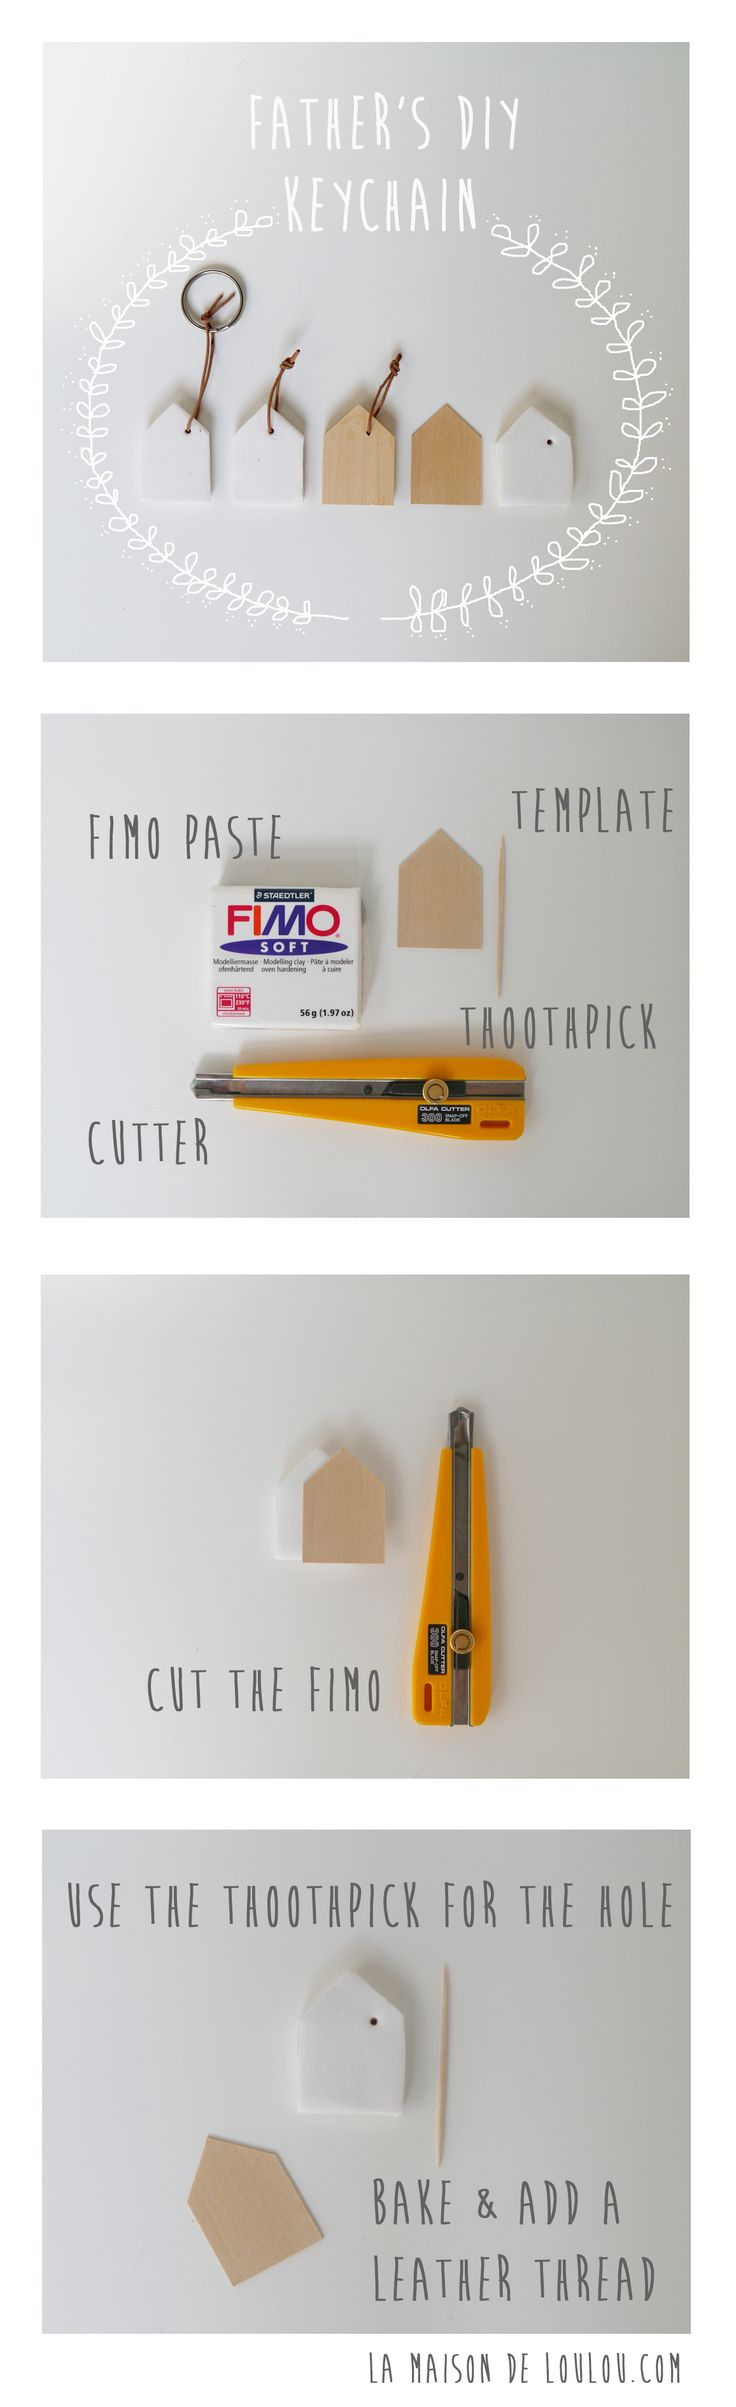 DIY father's day: home keychain by La maison de Loulou